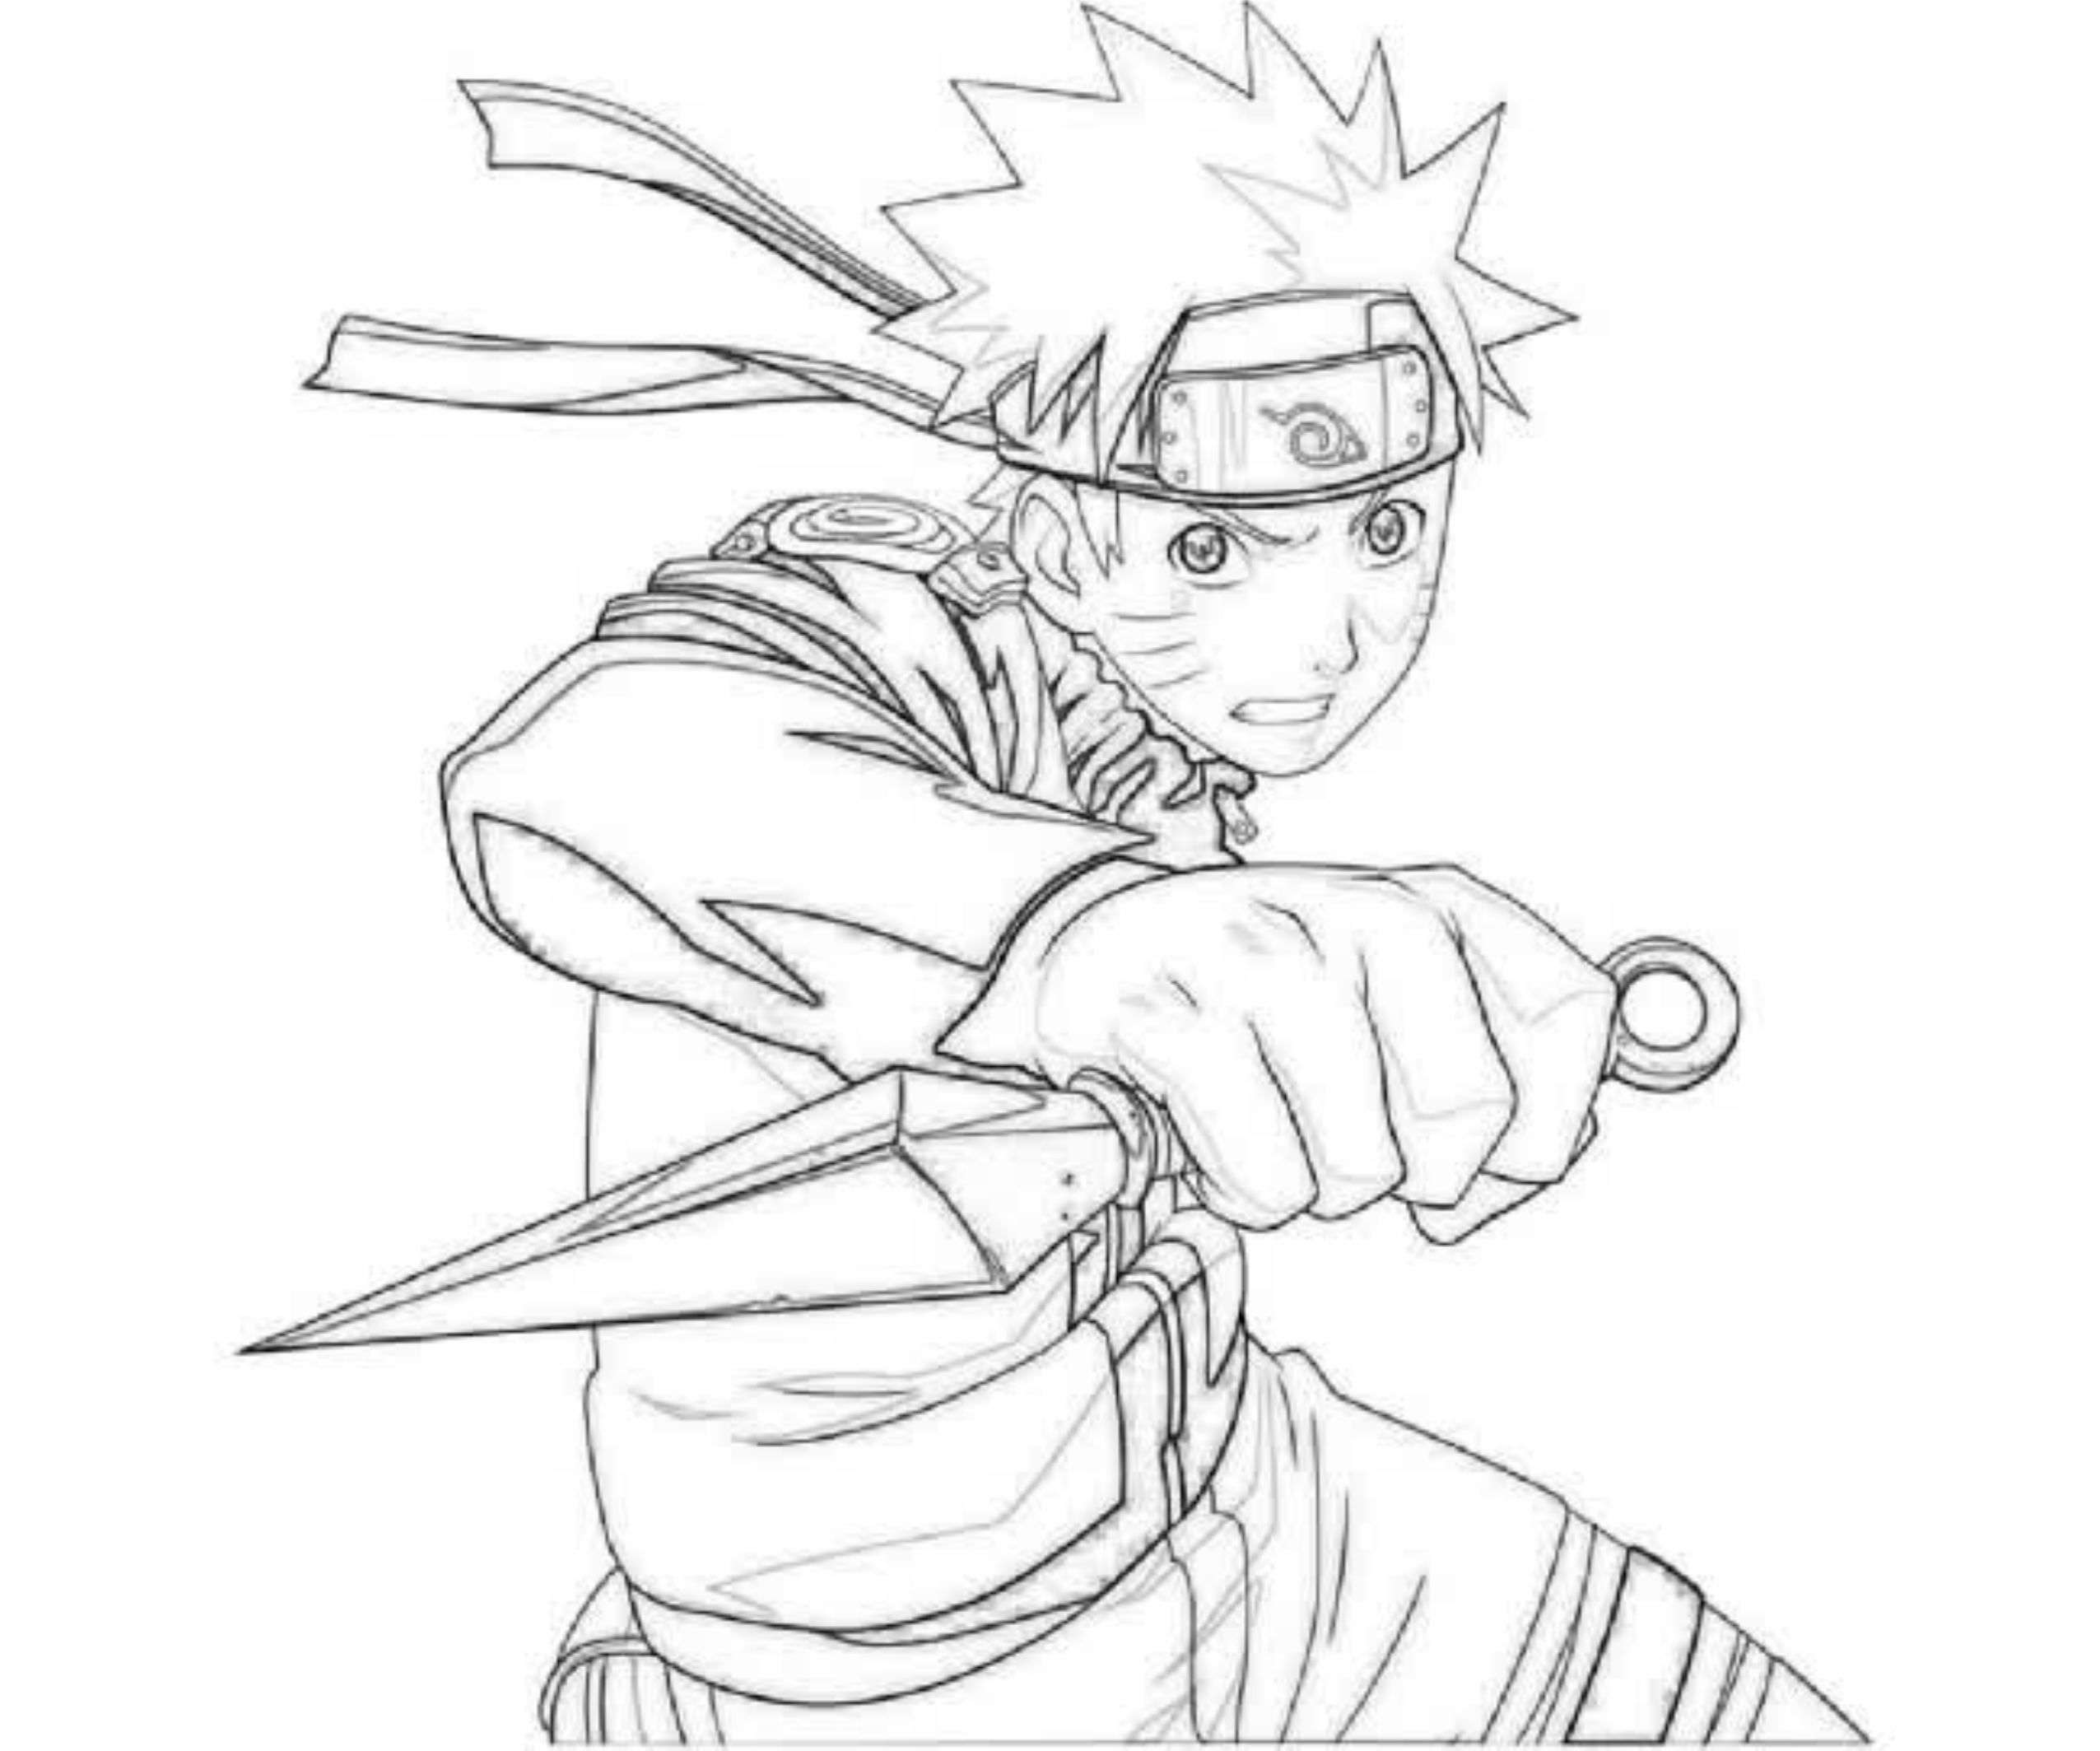 naruto colouring pages naruto shippuden coloring pages to download and print for free pages colouring naruto